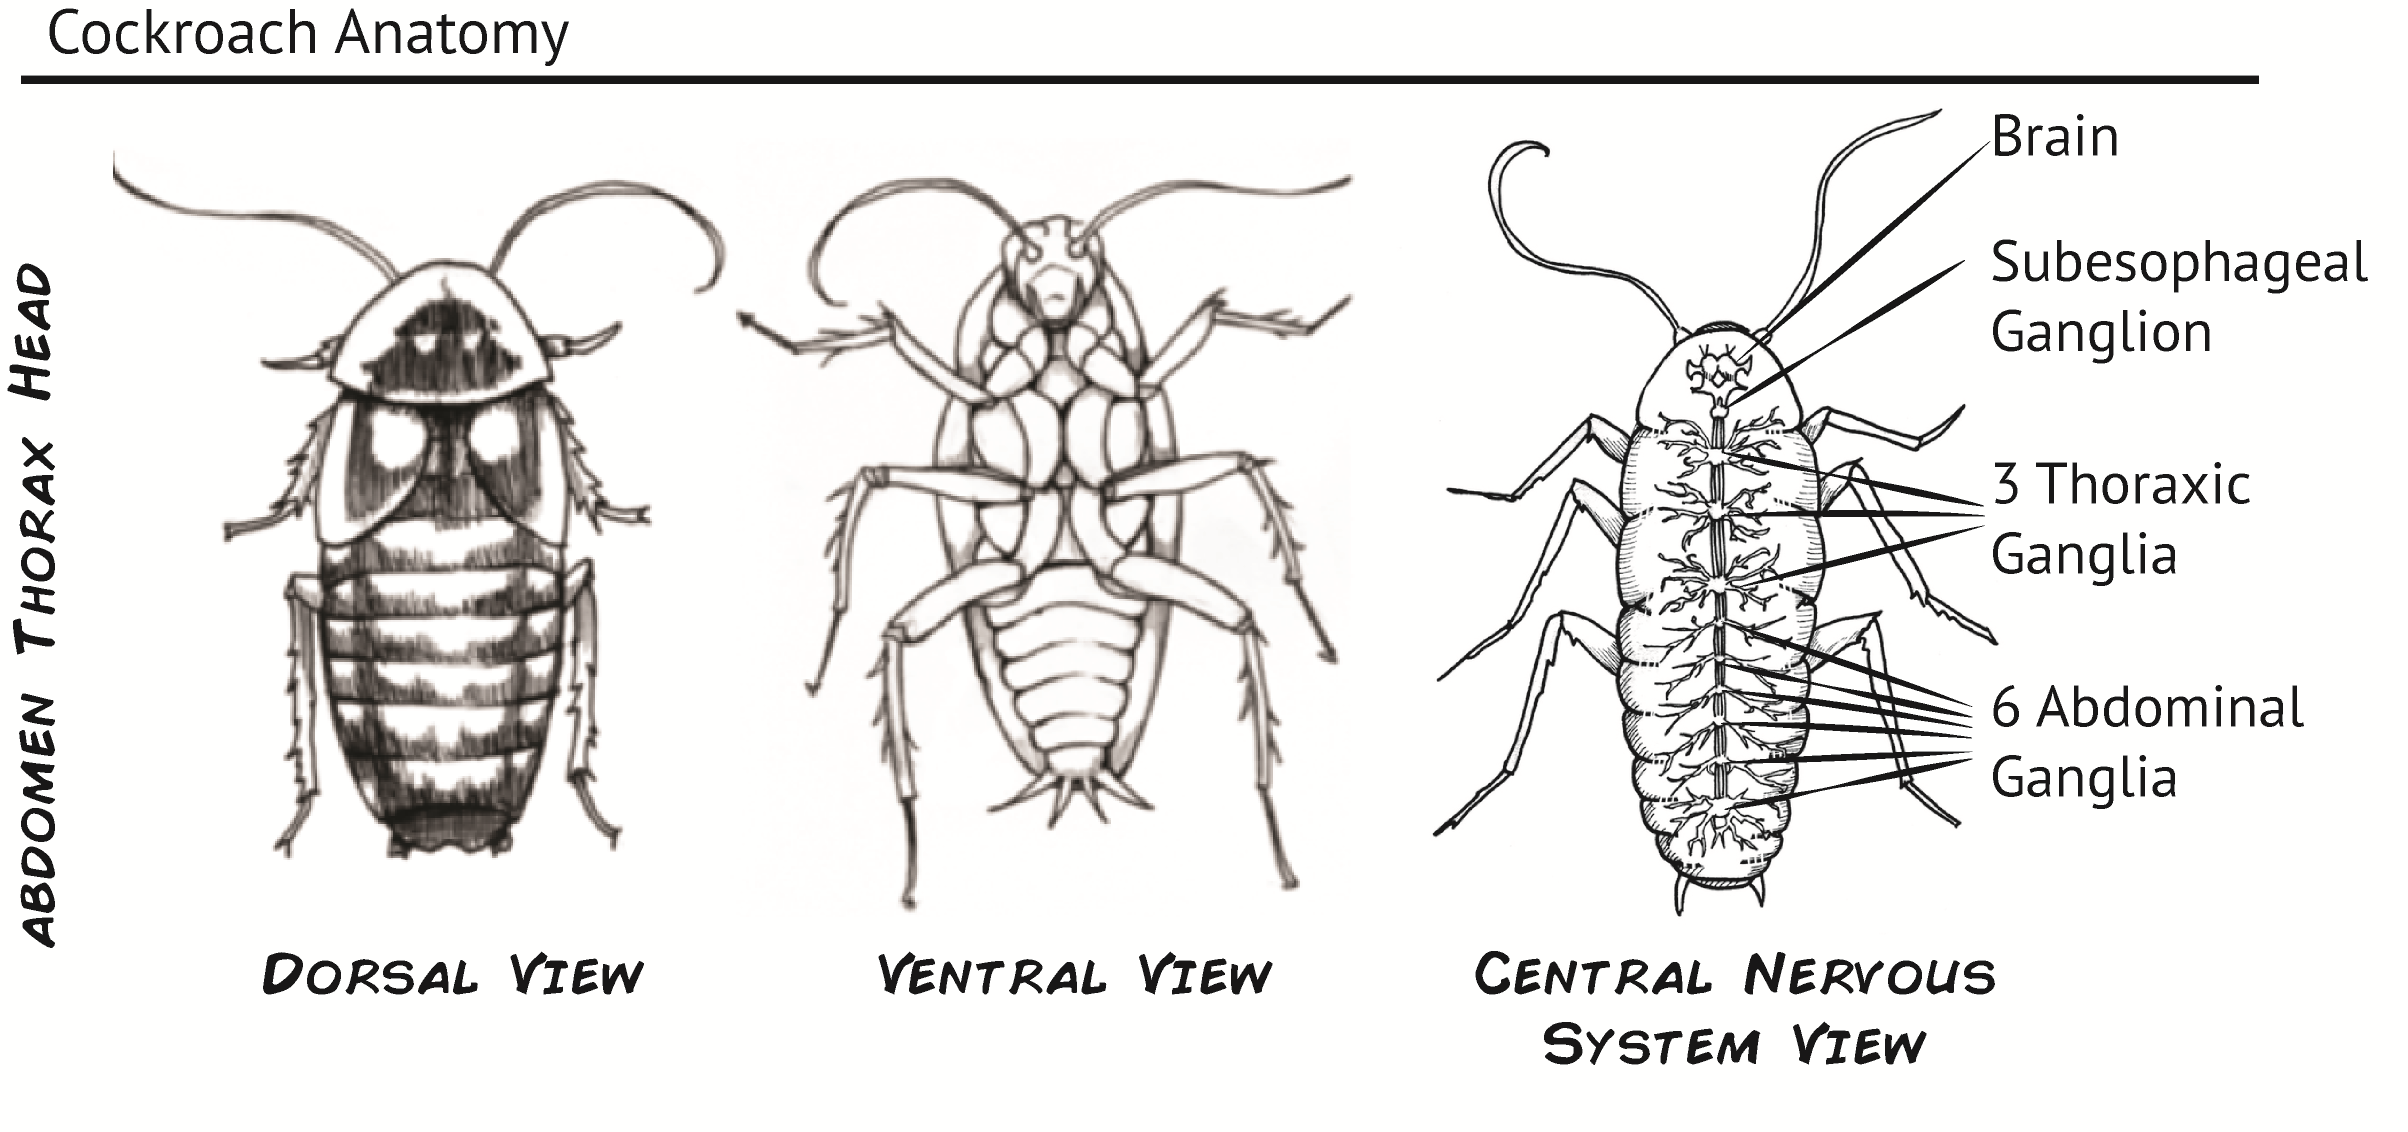 information-about-cock-roaches